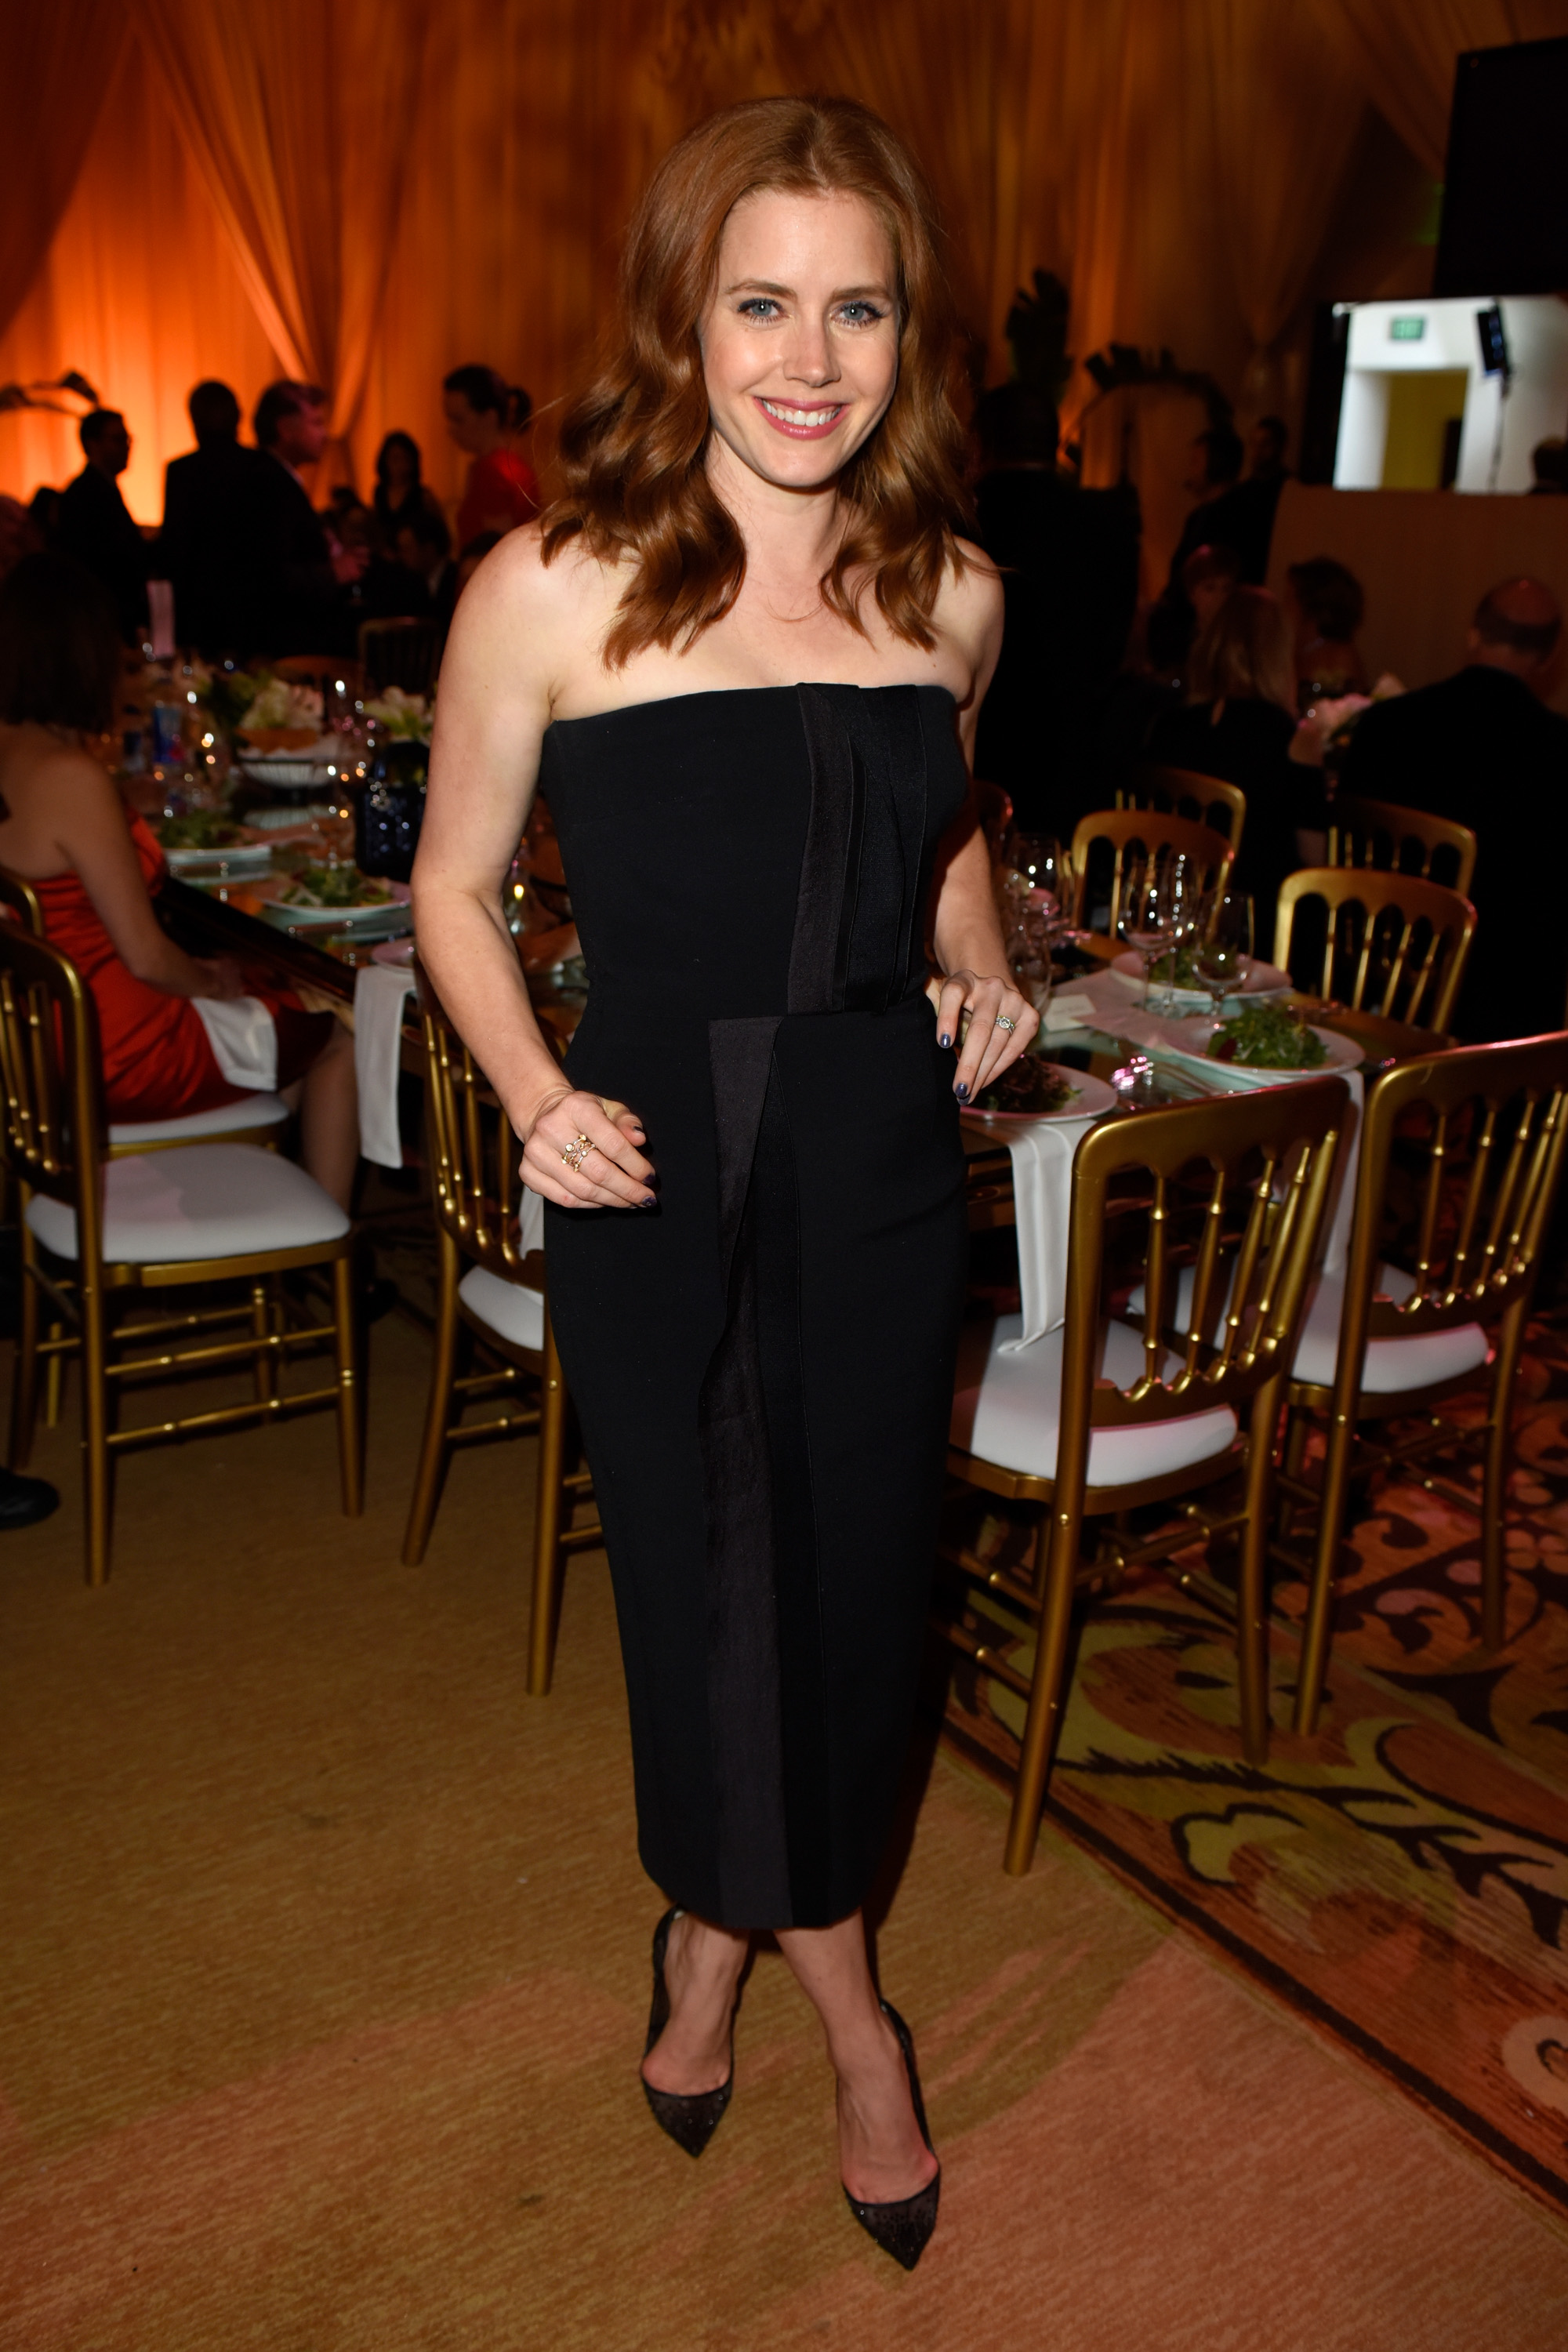 Amy Adams at The Weinstein Company's Academy Awards Nominees Dinner, hosted by Meiomi Wines on February 21, 2015 at The Montage in L.A.  (Charley Gallay/Getty Images)